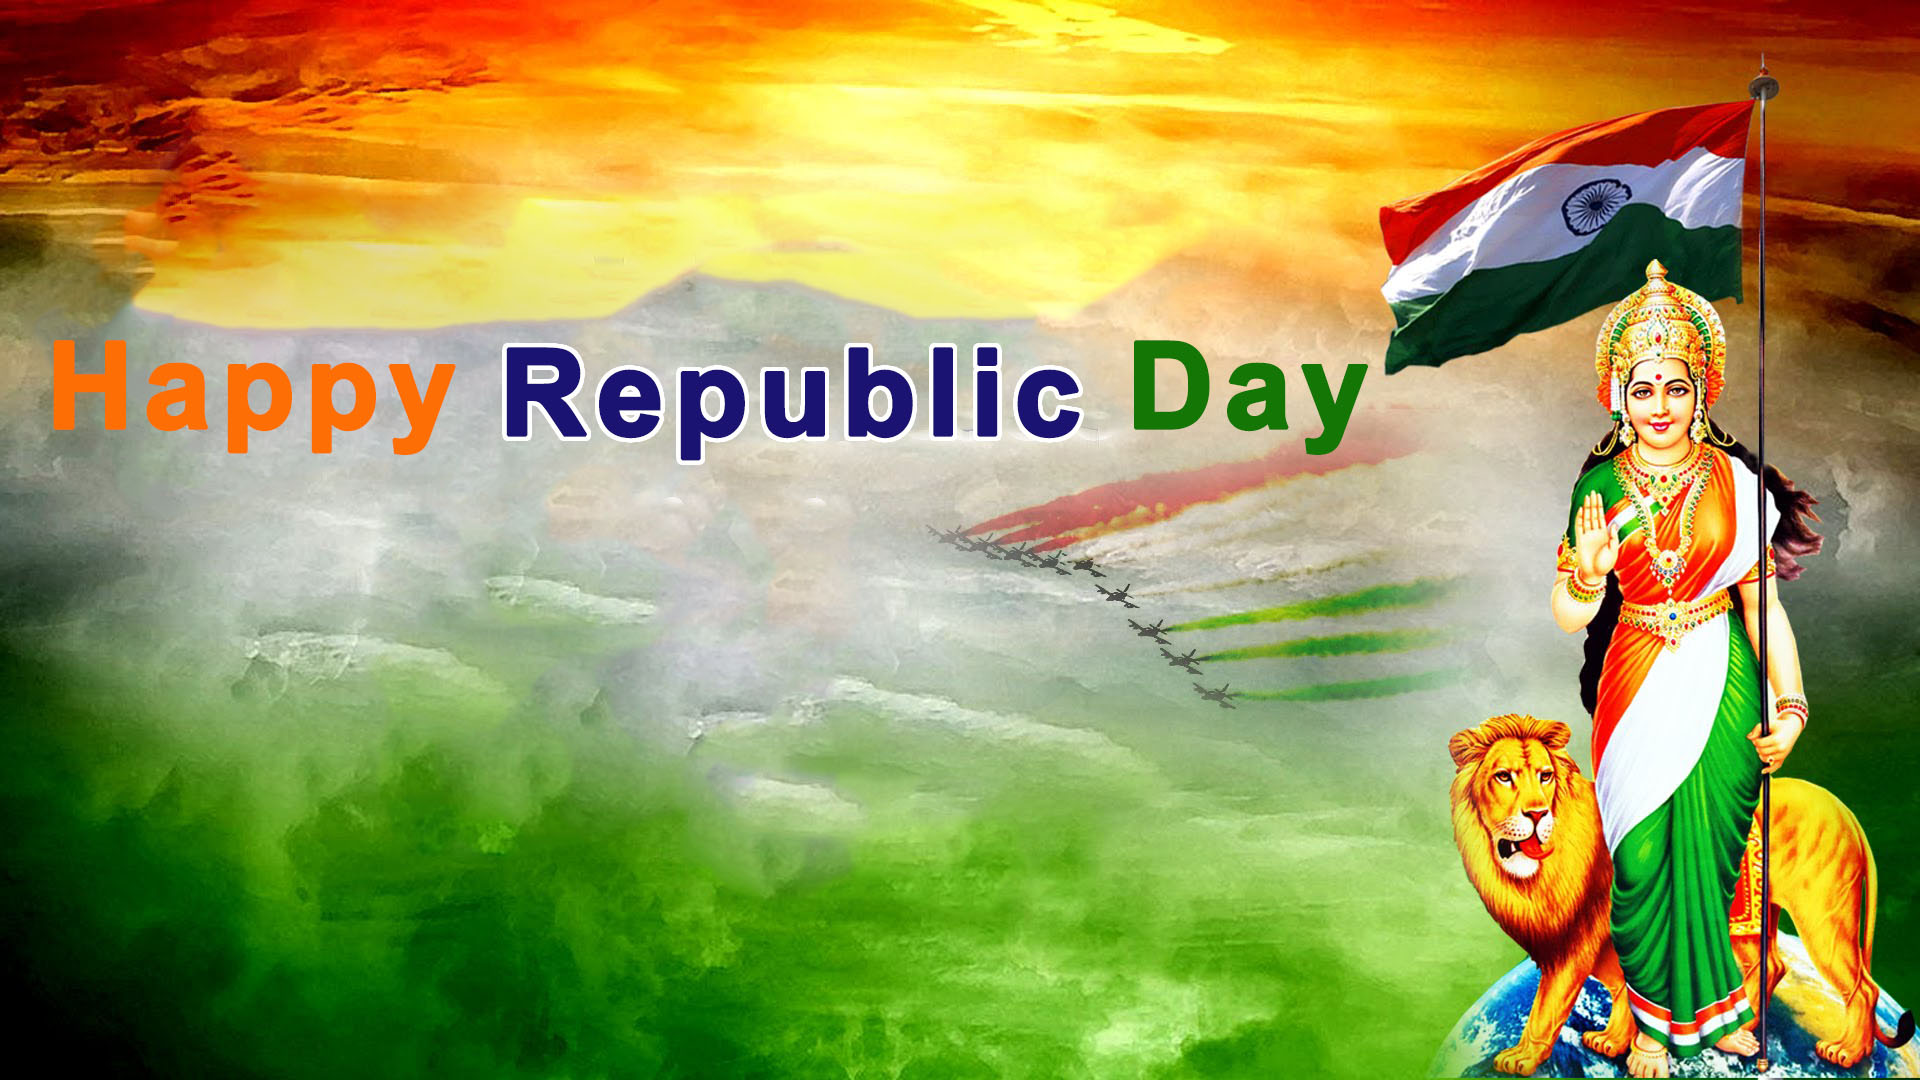 Bharat Mata Flag Beautiful Hd Wallpaper Republic Day 26th January